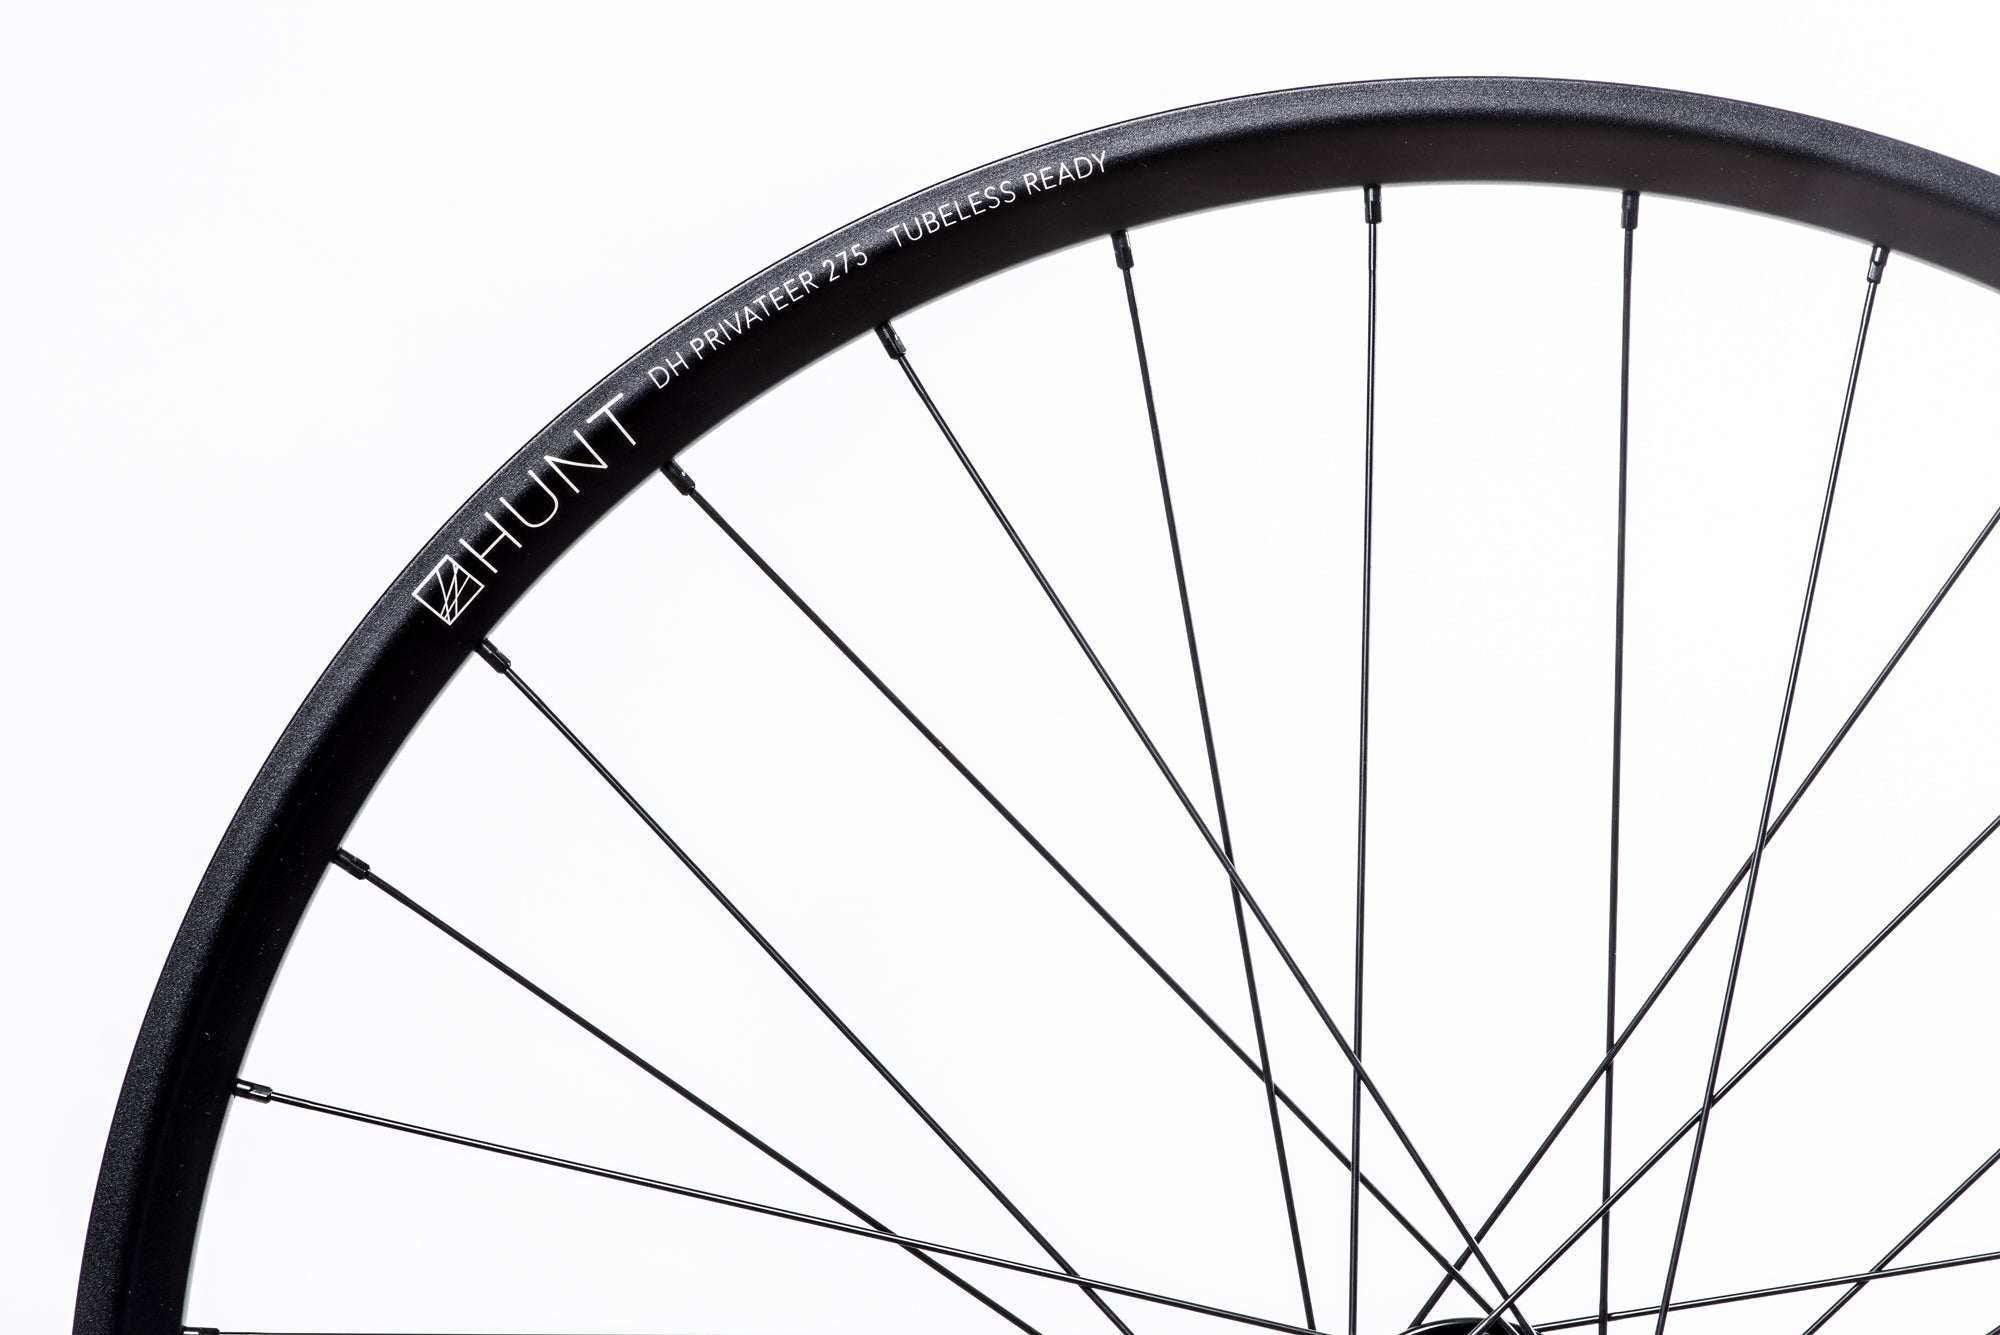 <h1>Spokes</h1><i> We have chosen top of the line, triple butted Pillar Spokes with increased reinforcement at the spoke head. Not only are these spokes extremely lightweight, they are also able to provide a greater degree of elasticity when put under increased stress. The Pillar Spoke Reinforcement (PSR) puts more material at the spoke head, just before the J-Bend to prevent failure in this stress area. </i>